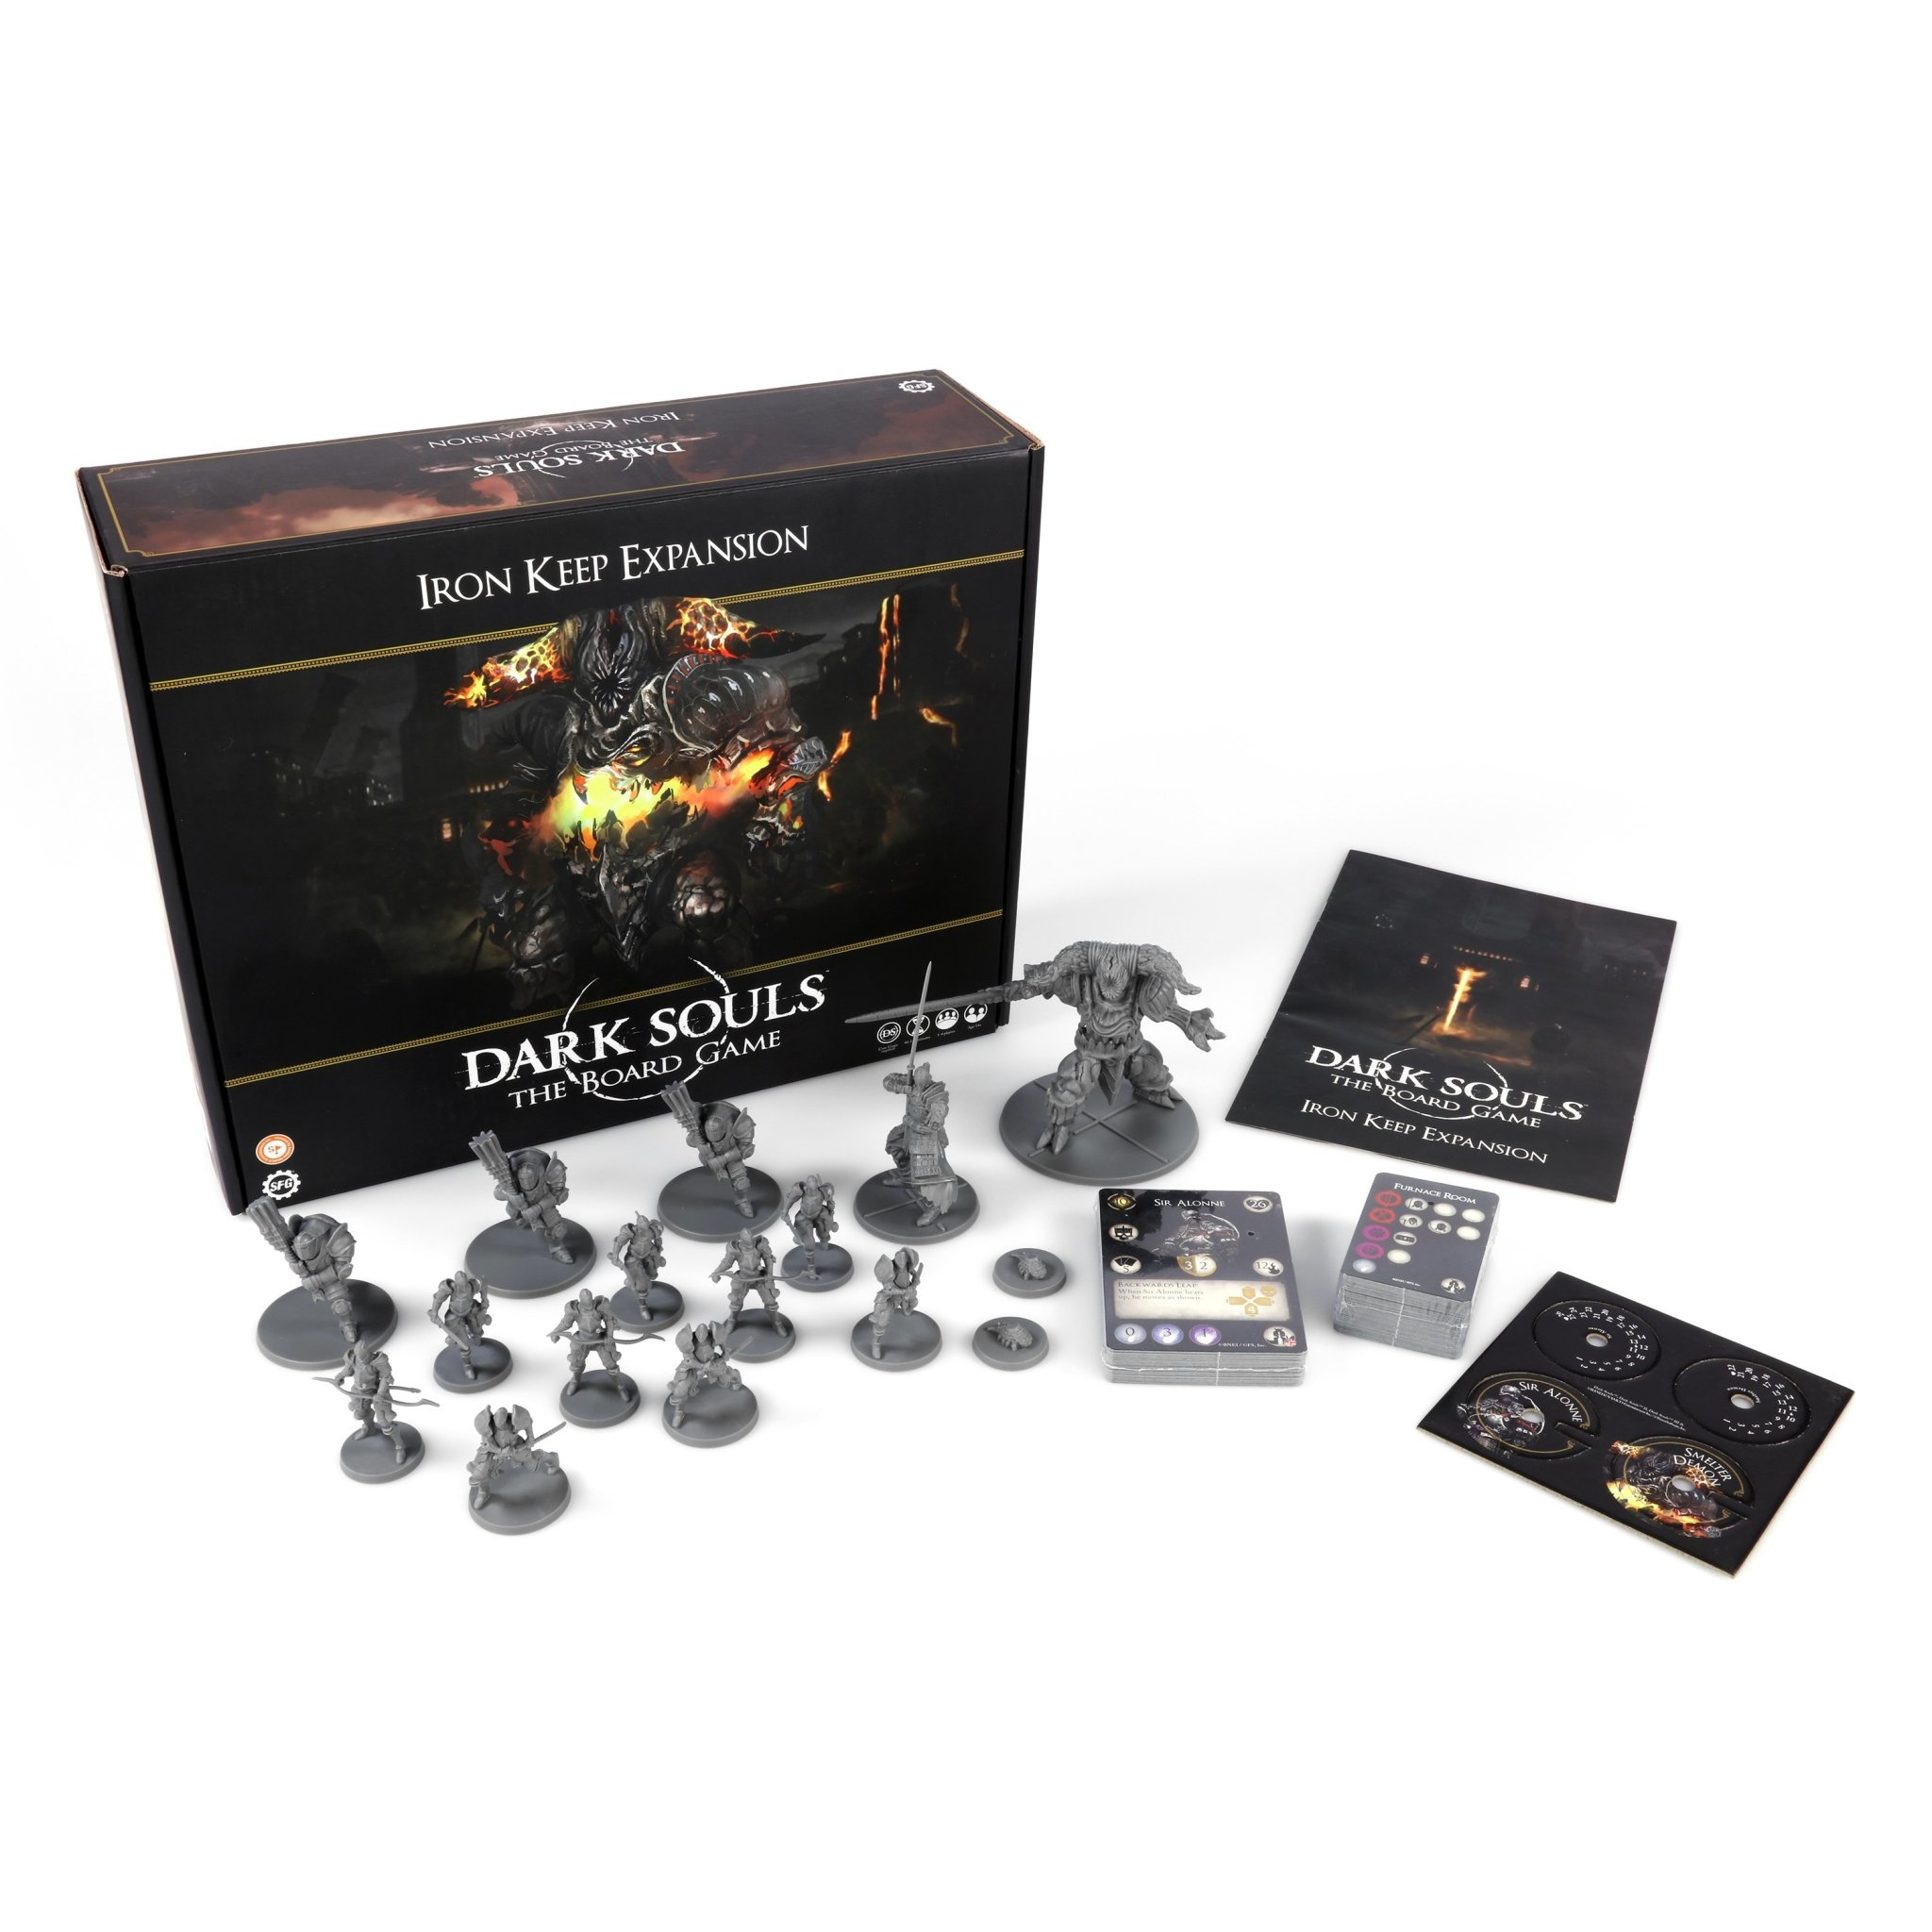 Steamforged Dark Souls board game: Iron Keep Expansion